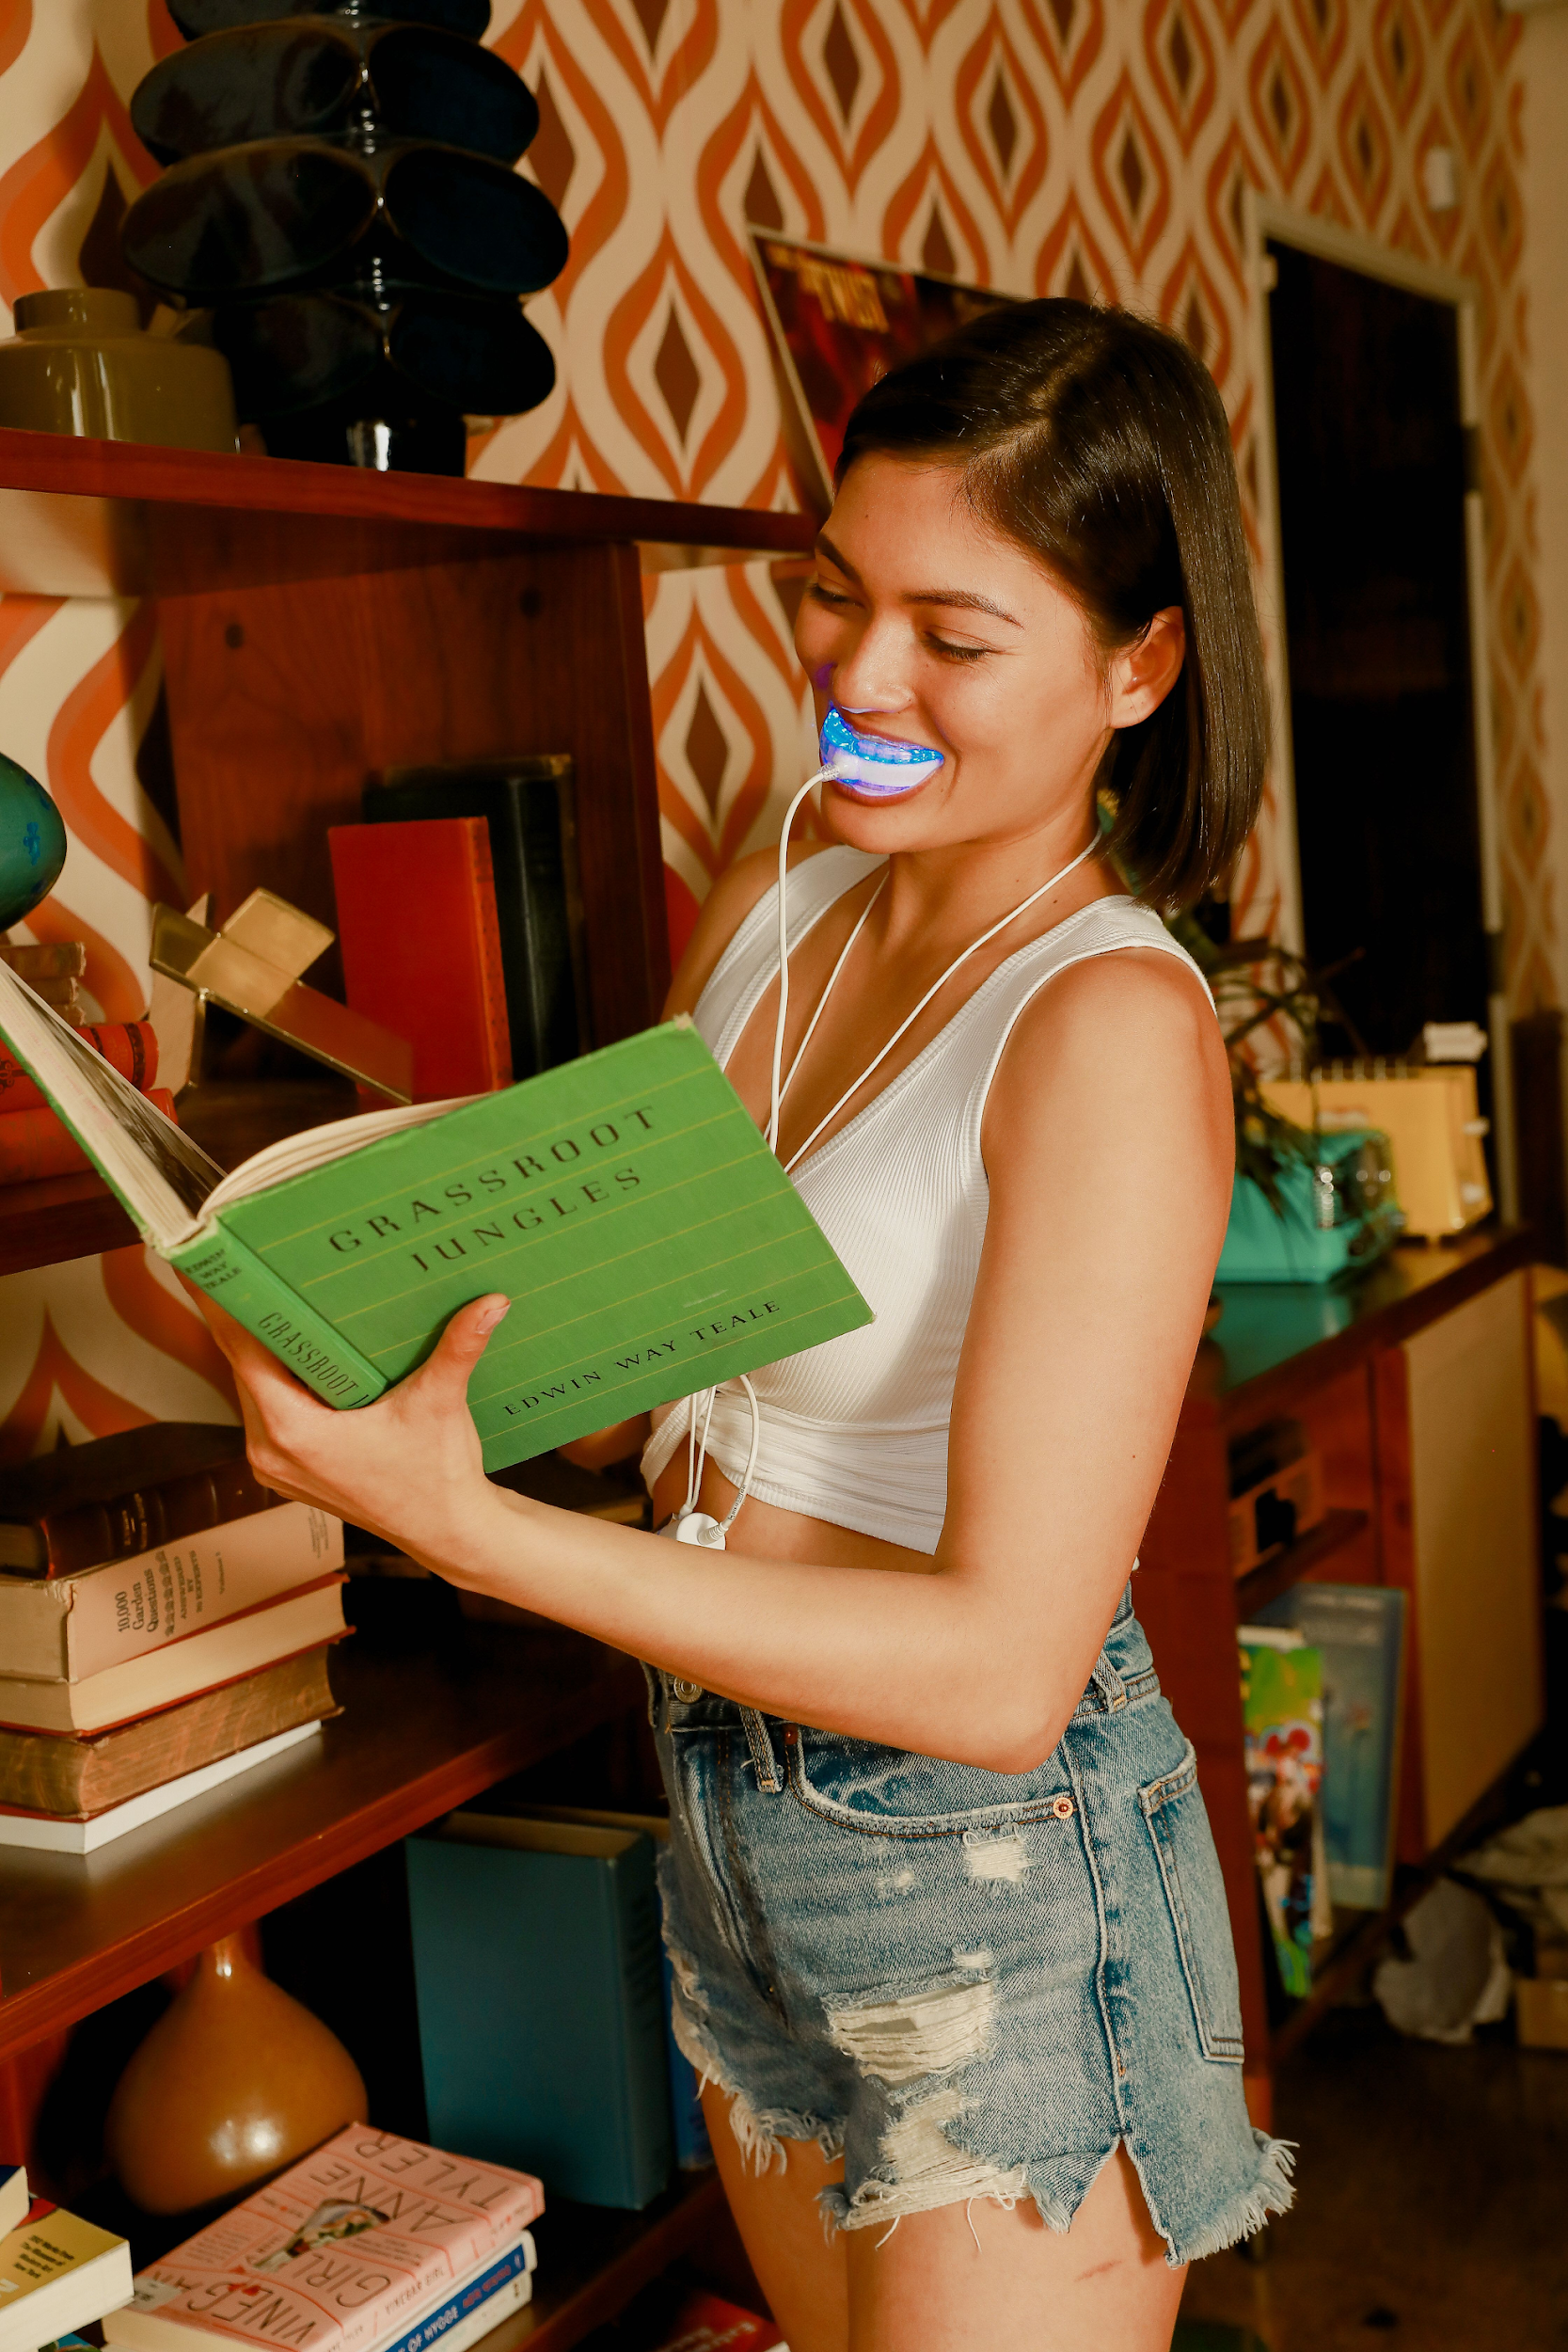 Young woman in shorts using a GLO Science teeth whitening device while standing next to a bookshelf reading Grassroot Jungles.